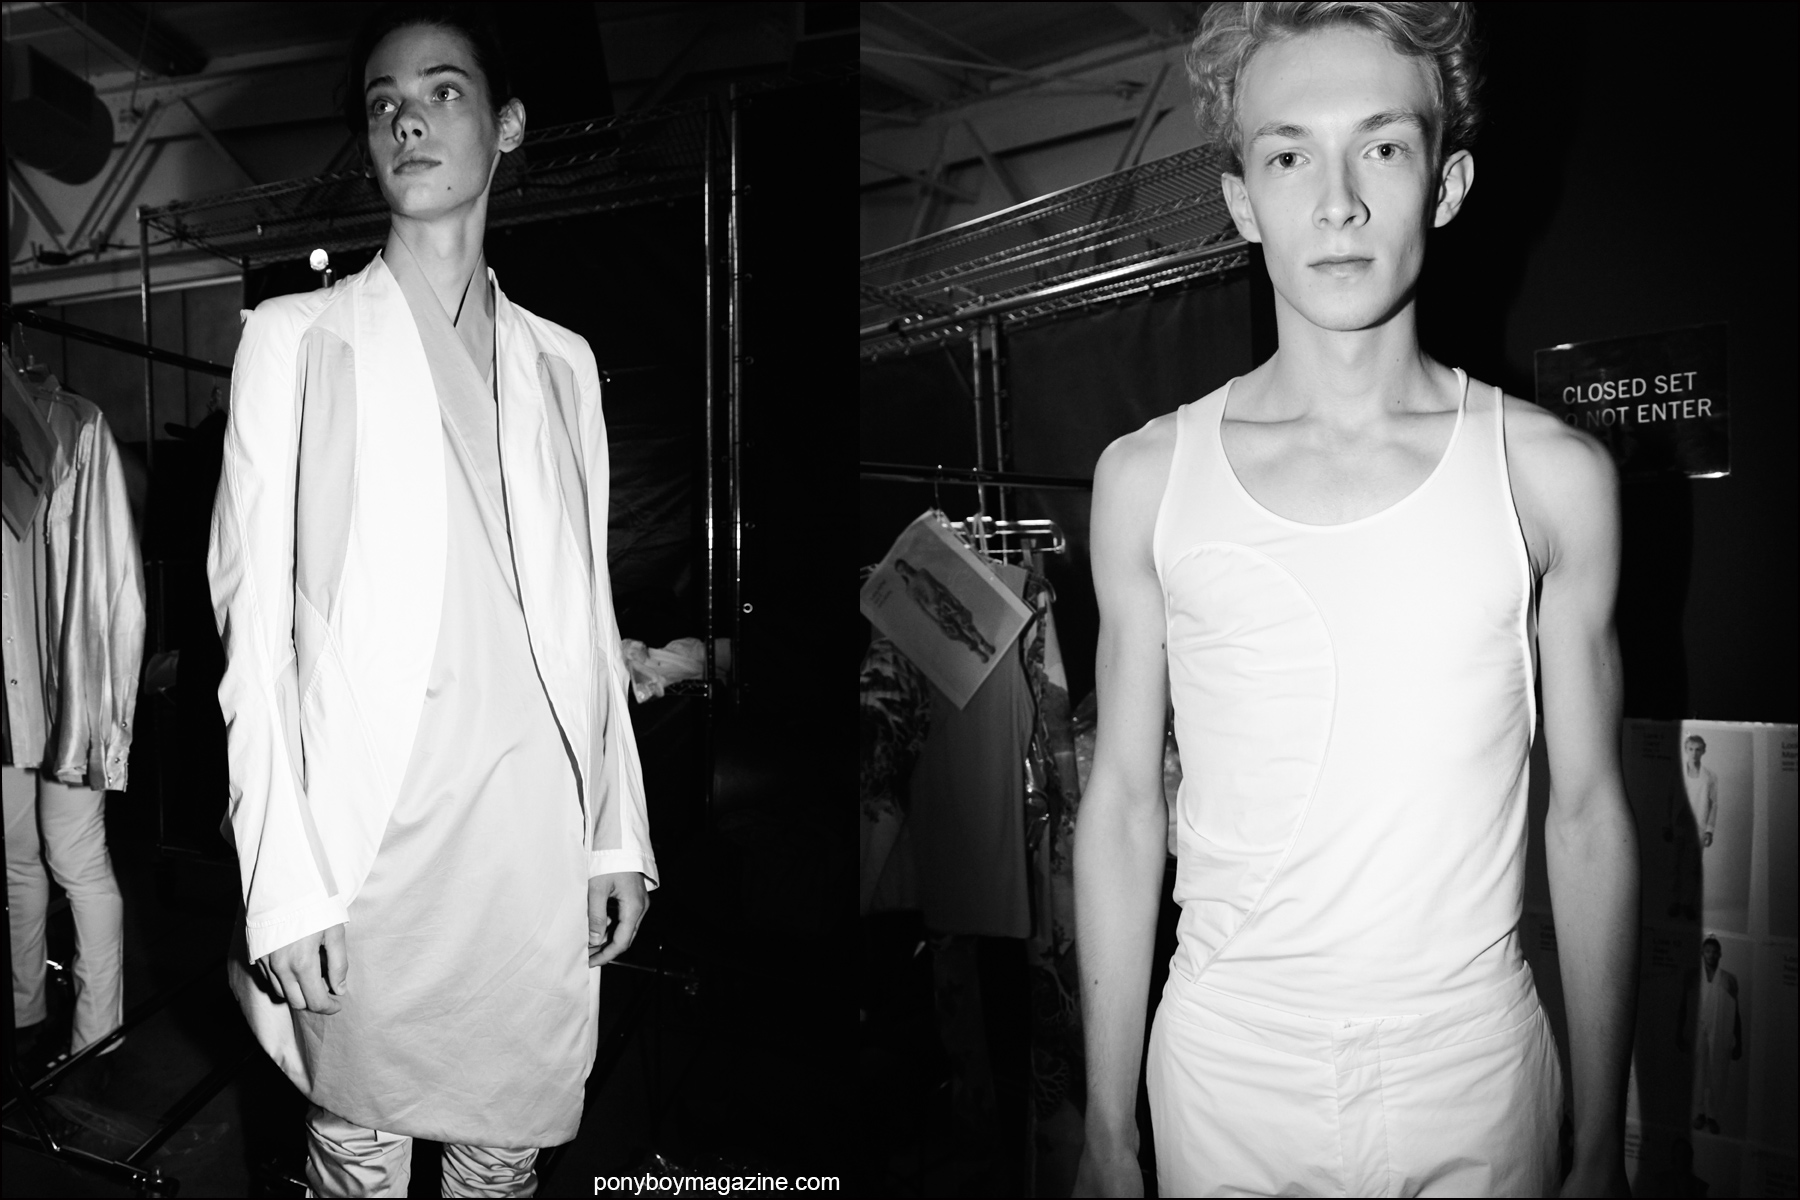 The threeASFOUR S/S16 collection photographed backstage on male models during New York Fashion Week. Photography by Alexander Thompson for Ponyboy magazine NY.